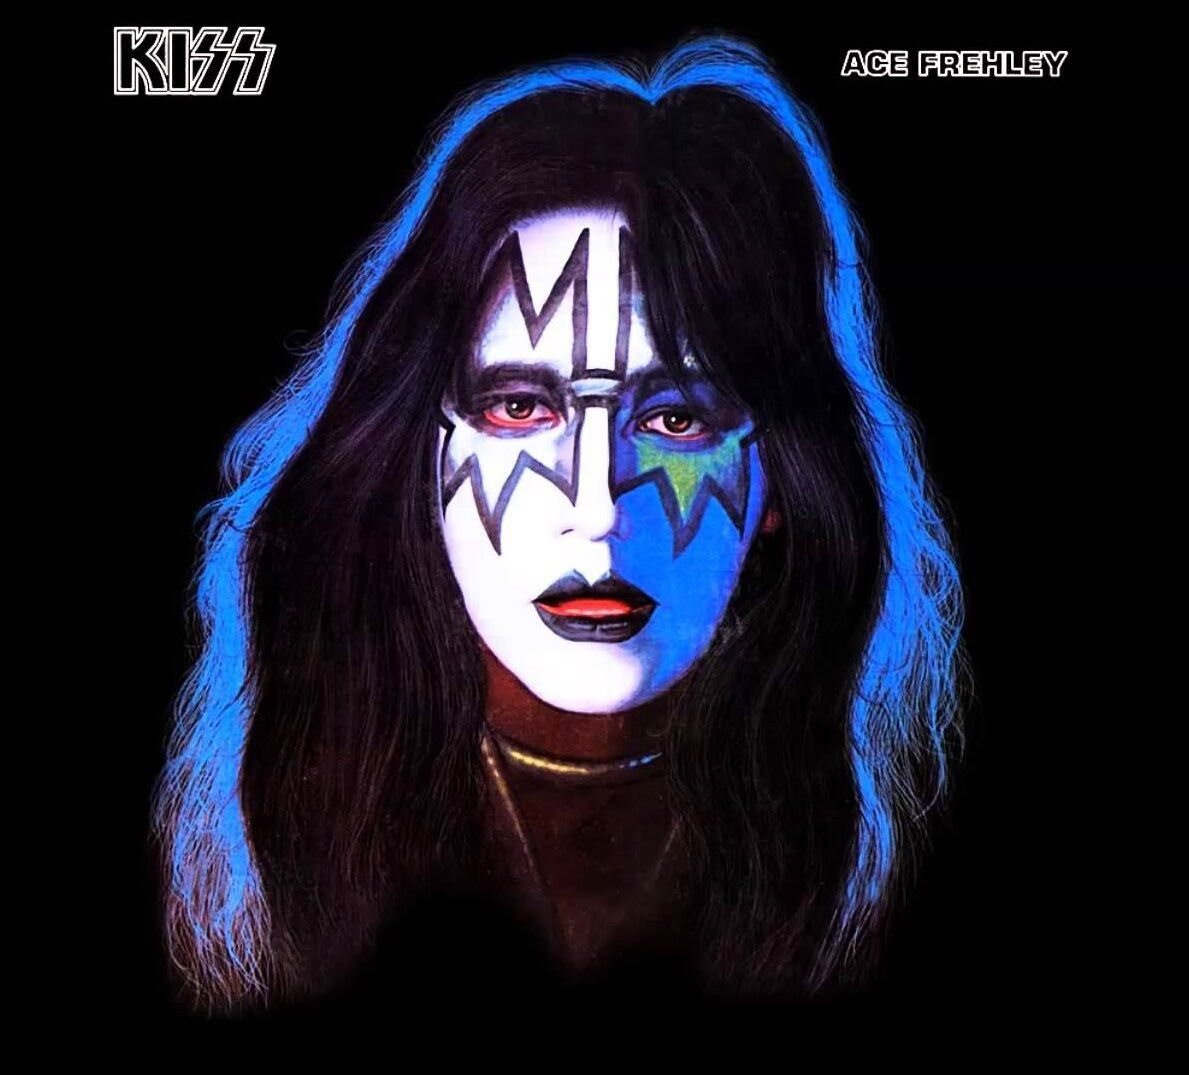 Primary image for KISS ACE FREHLEY SOLO ALBUM COVER POSTER 24 X 24 Inches FANTASTIC!!